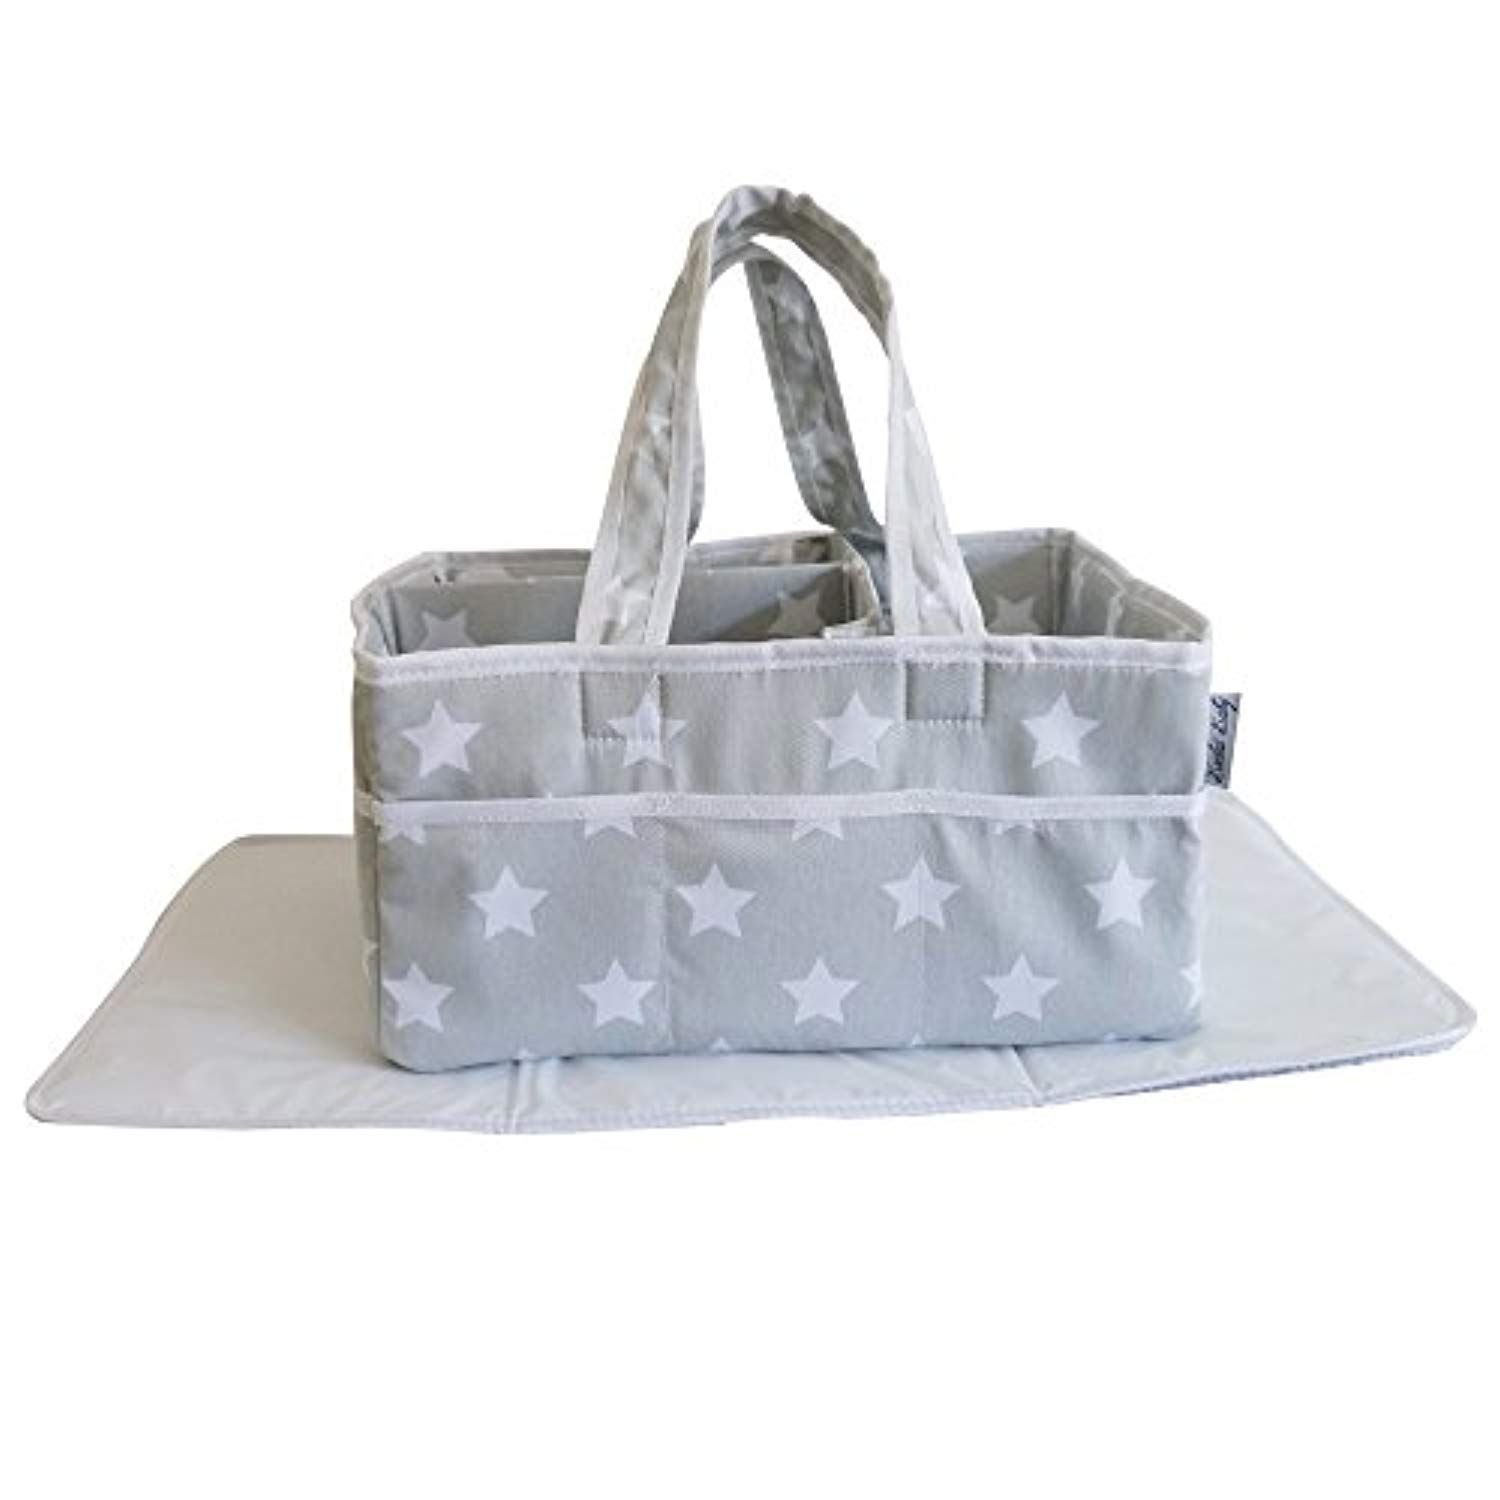 Baby Diaper caddy organizer with matching changing pad Registry Gifts